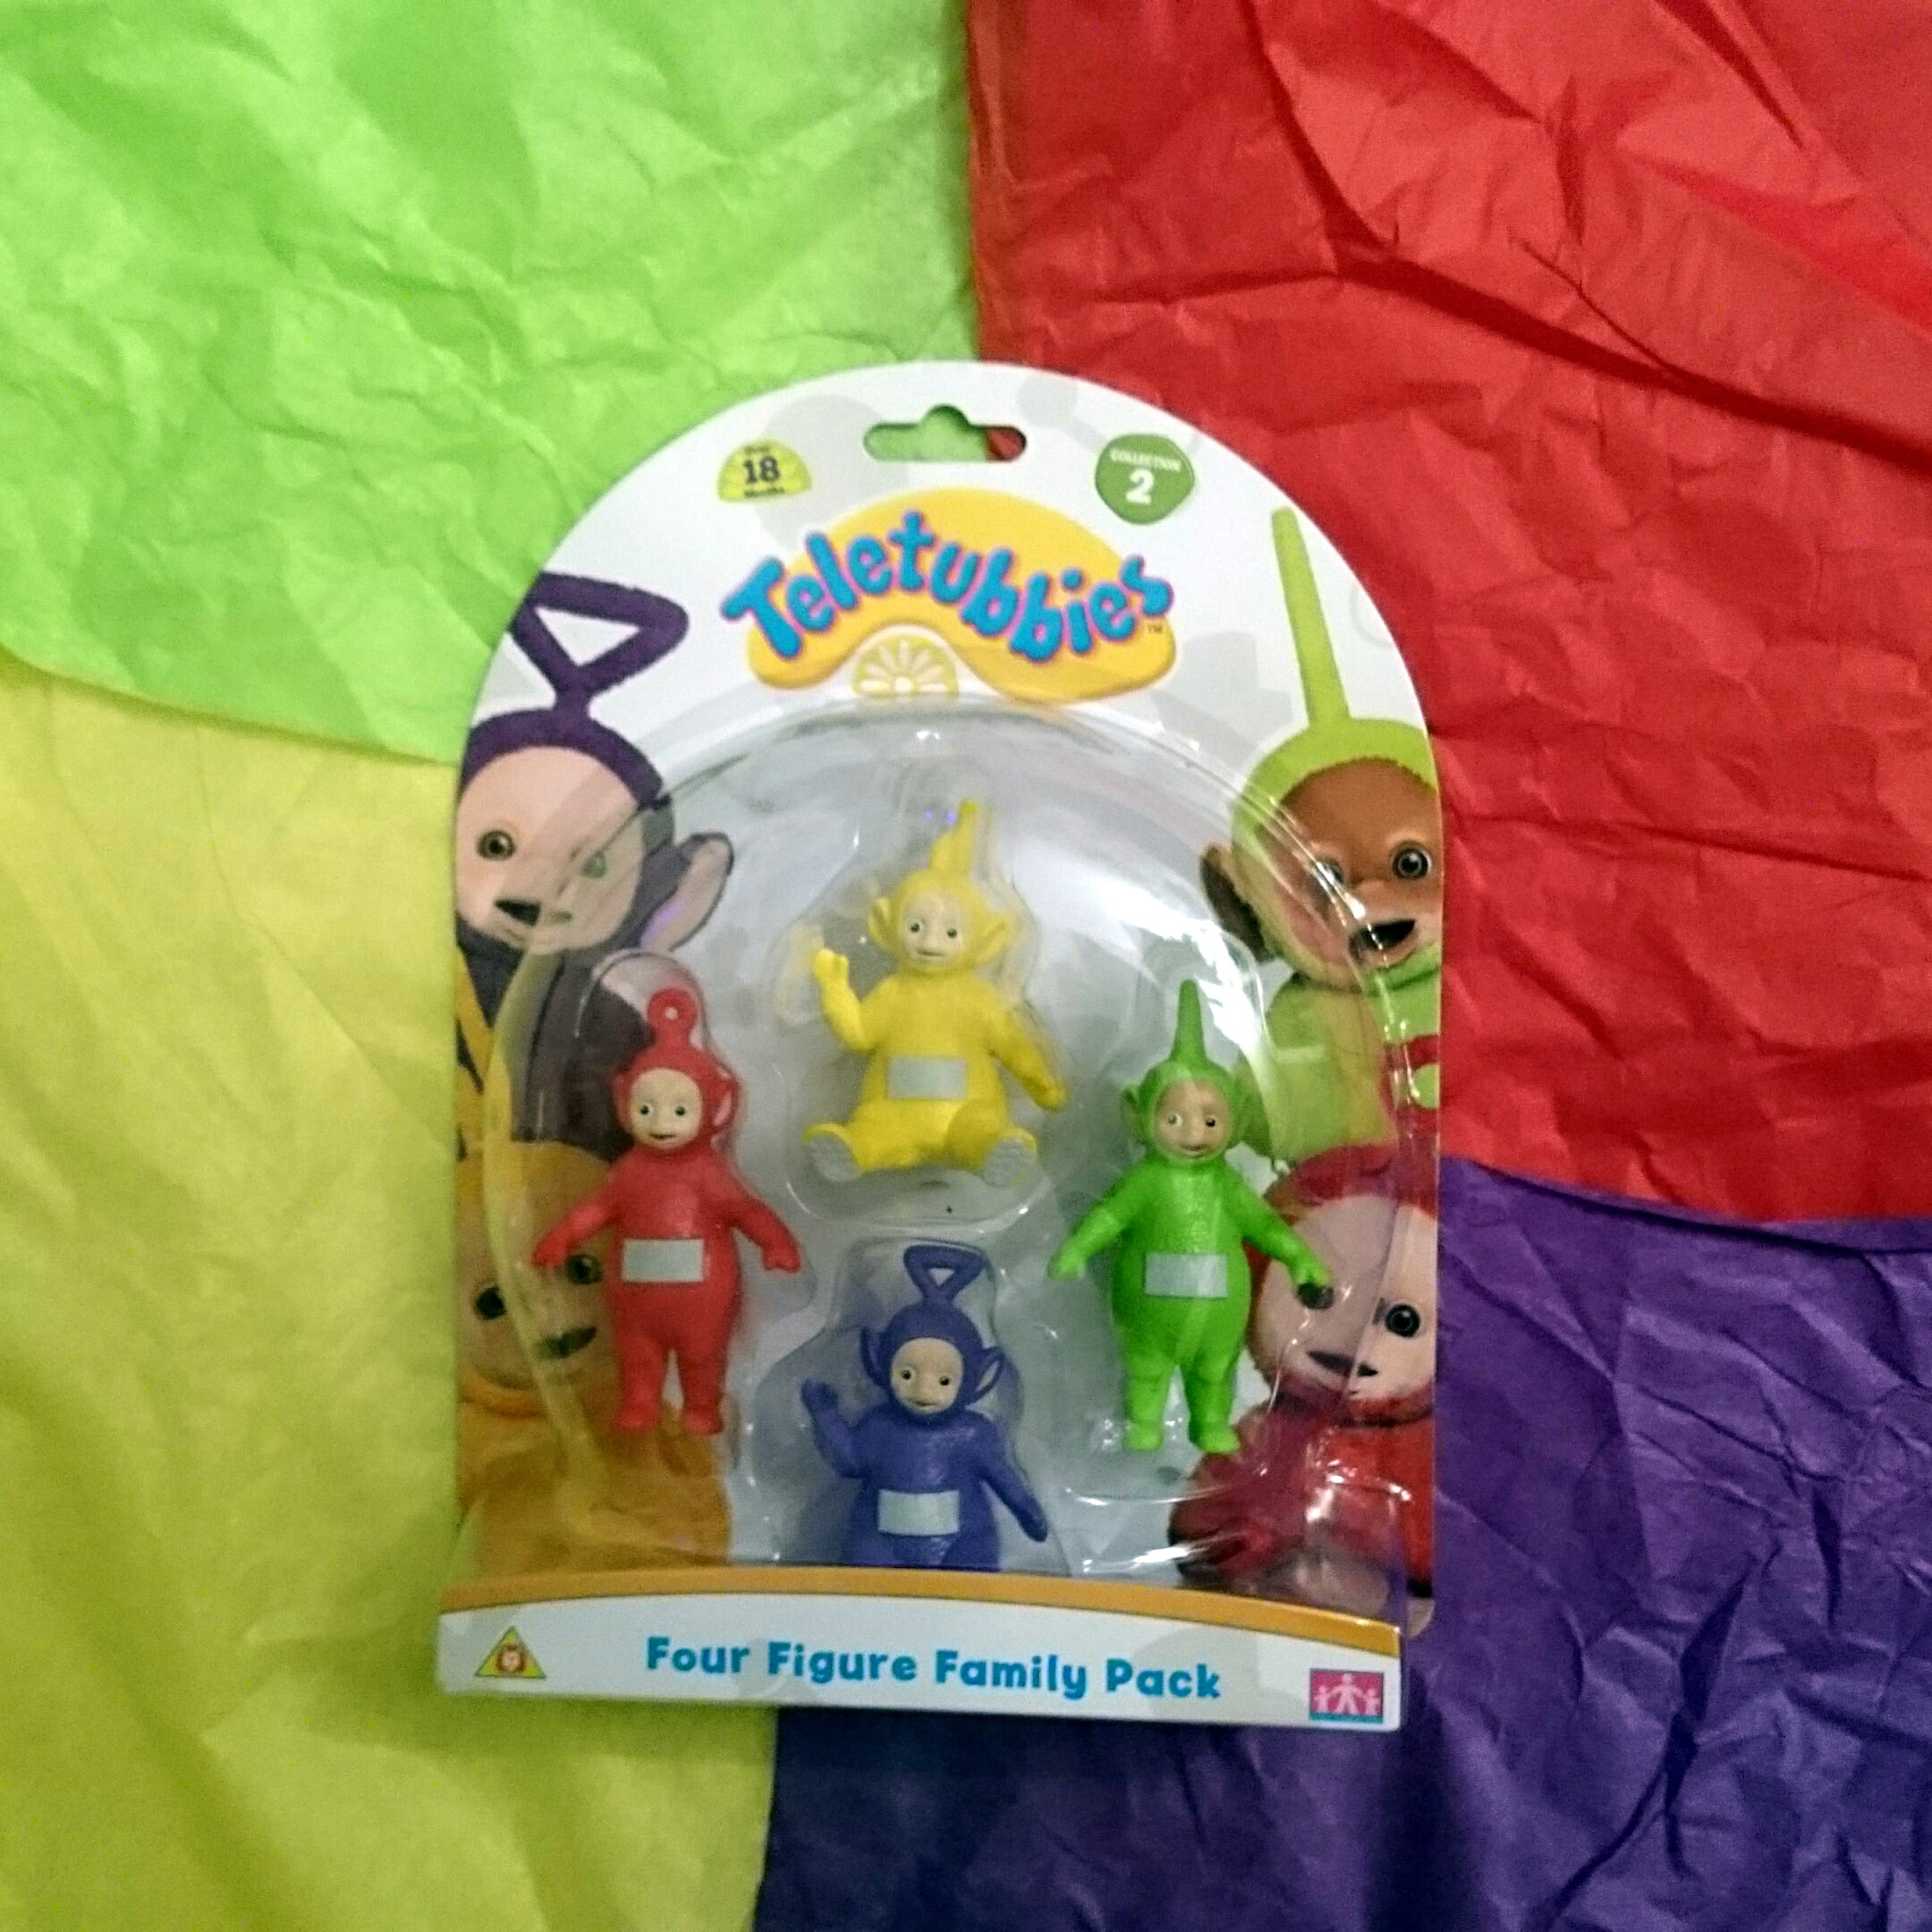 Four Figure Family Pack of figurines